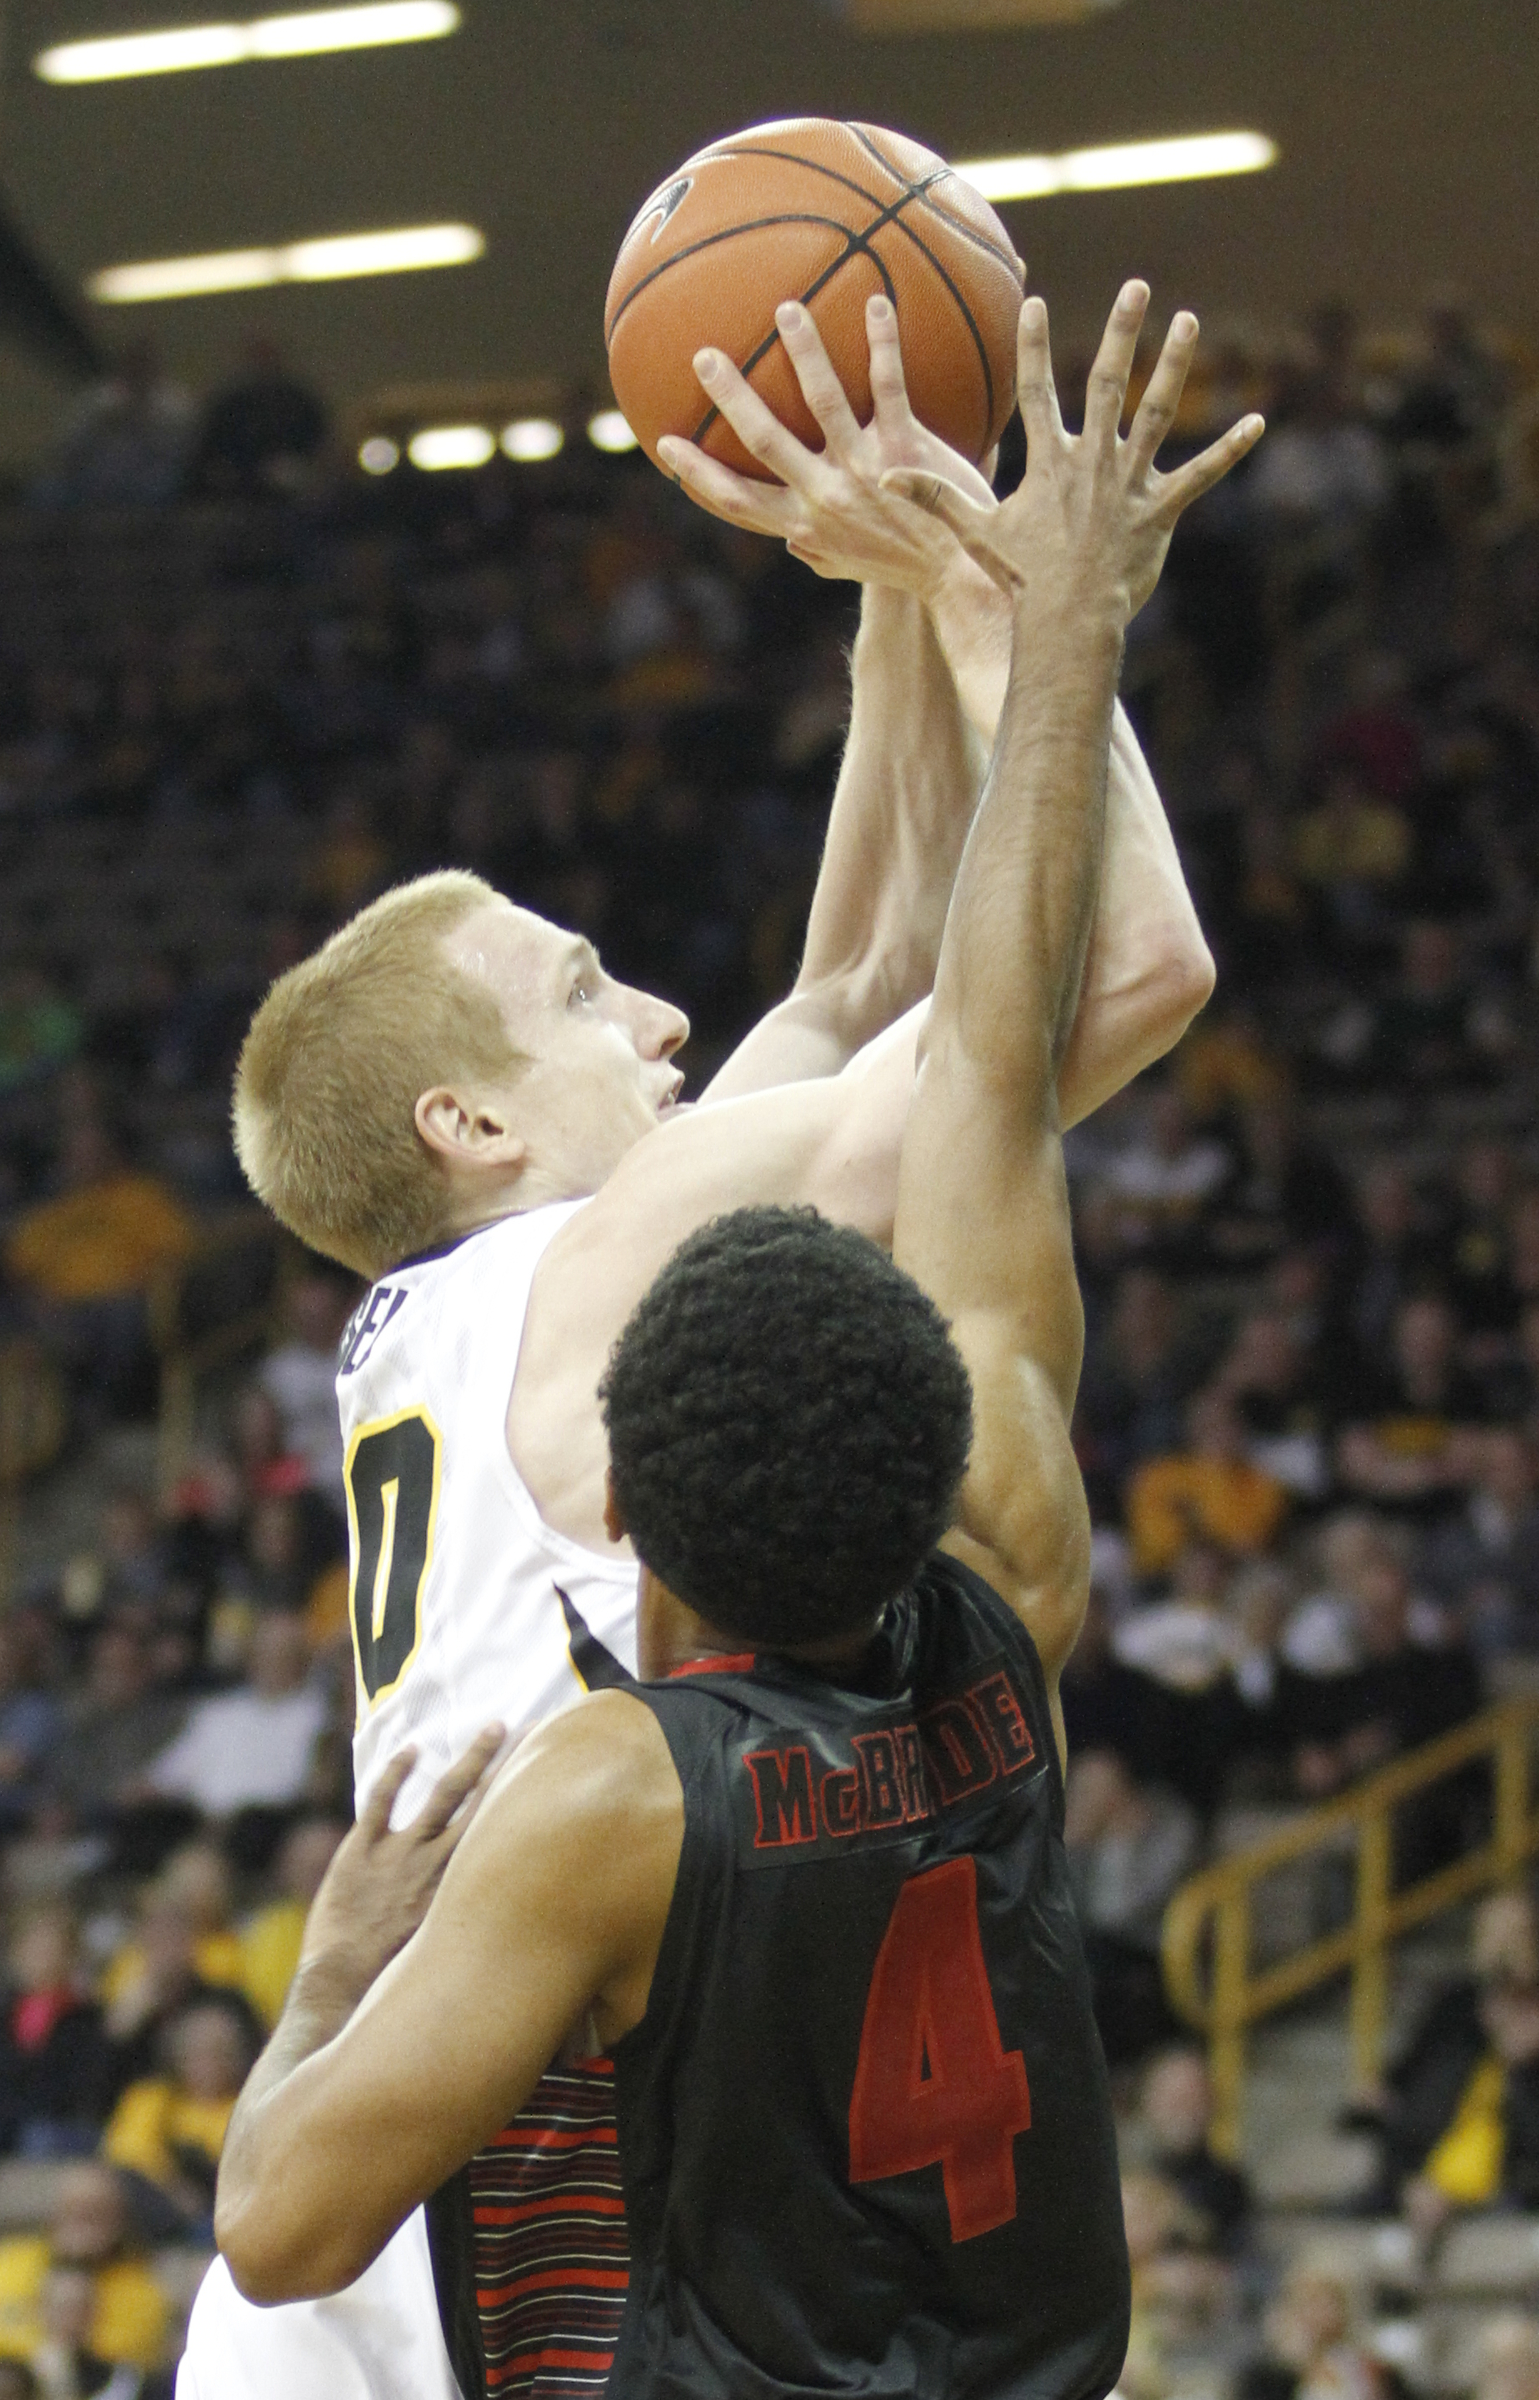 Iowa guard Mike Gesell (10) drives to the basket against Gardner-Webb guard Harold McBride (4) during the first half of an NCAA college basketball game in Iowa City, Iowa, Friday, Nov. 13, 2015. (AP Photo/Matthew Holst)